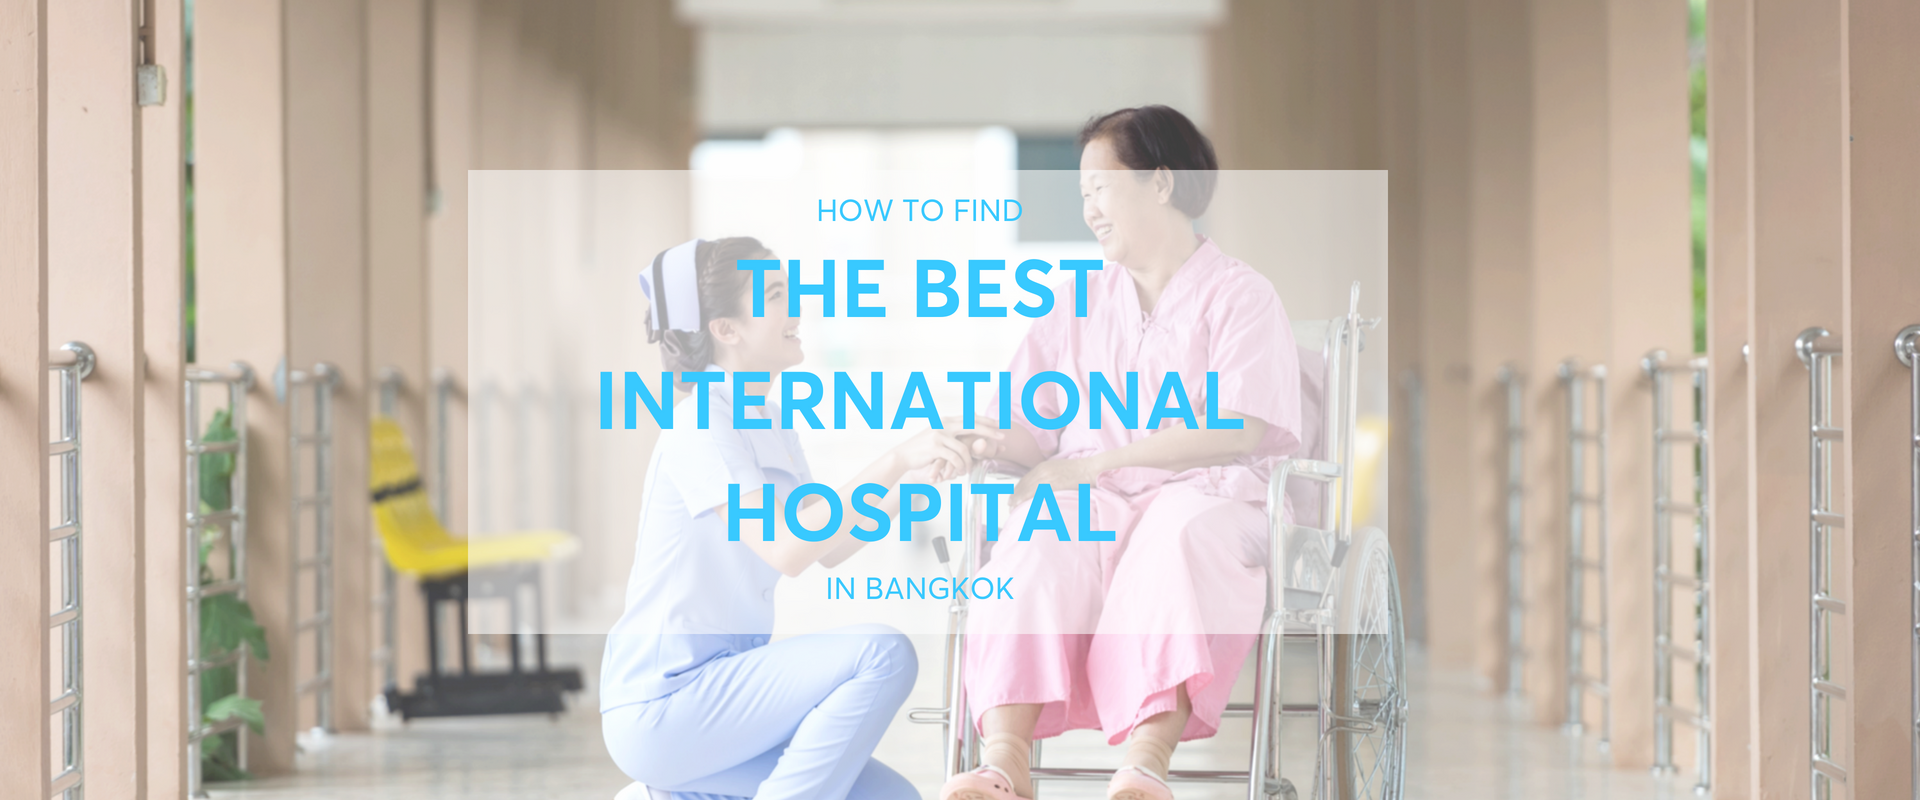 How to Find the Best International Hospital in Bangkok Blog banner-2